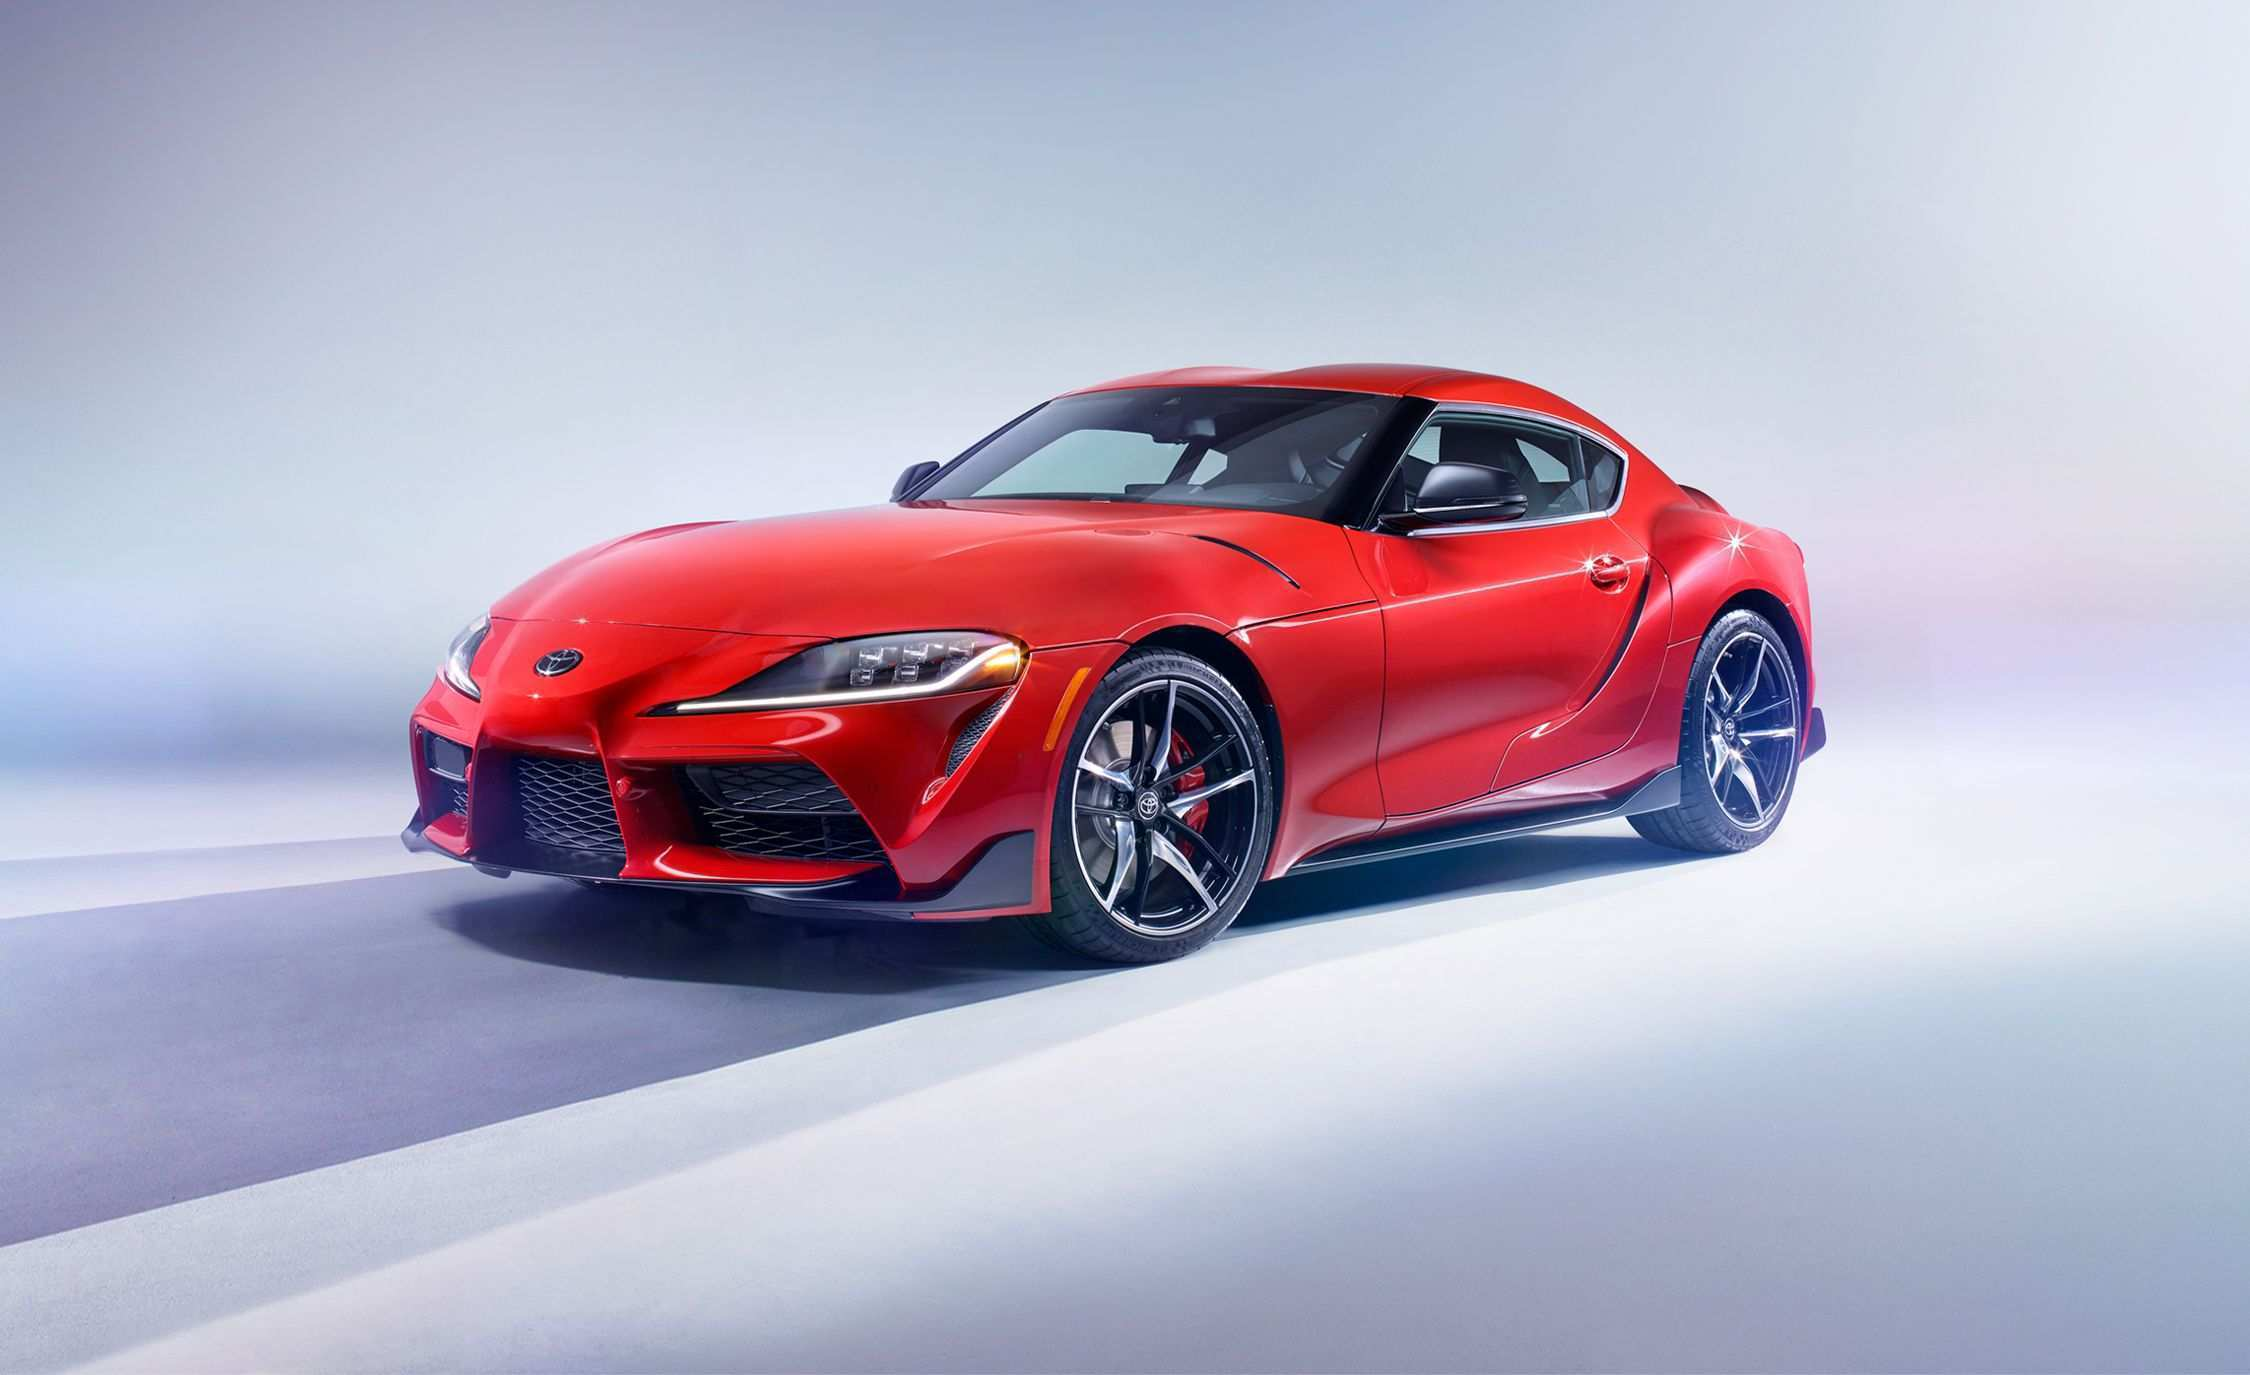 29 All New Supra Toyota 2020 Research New with Supra Toyota 2020